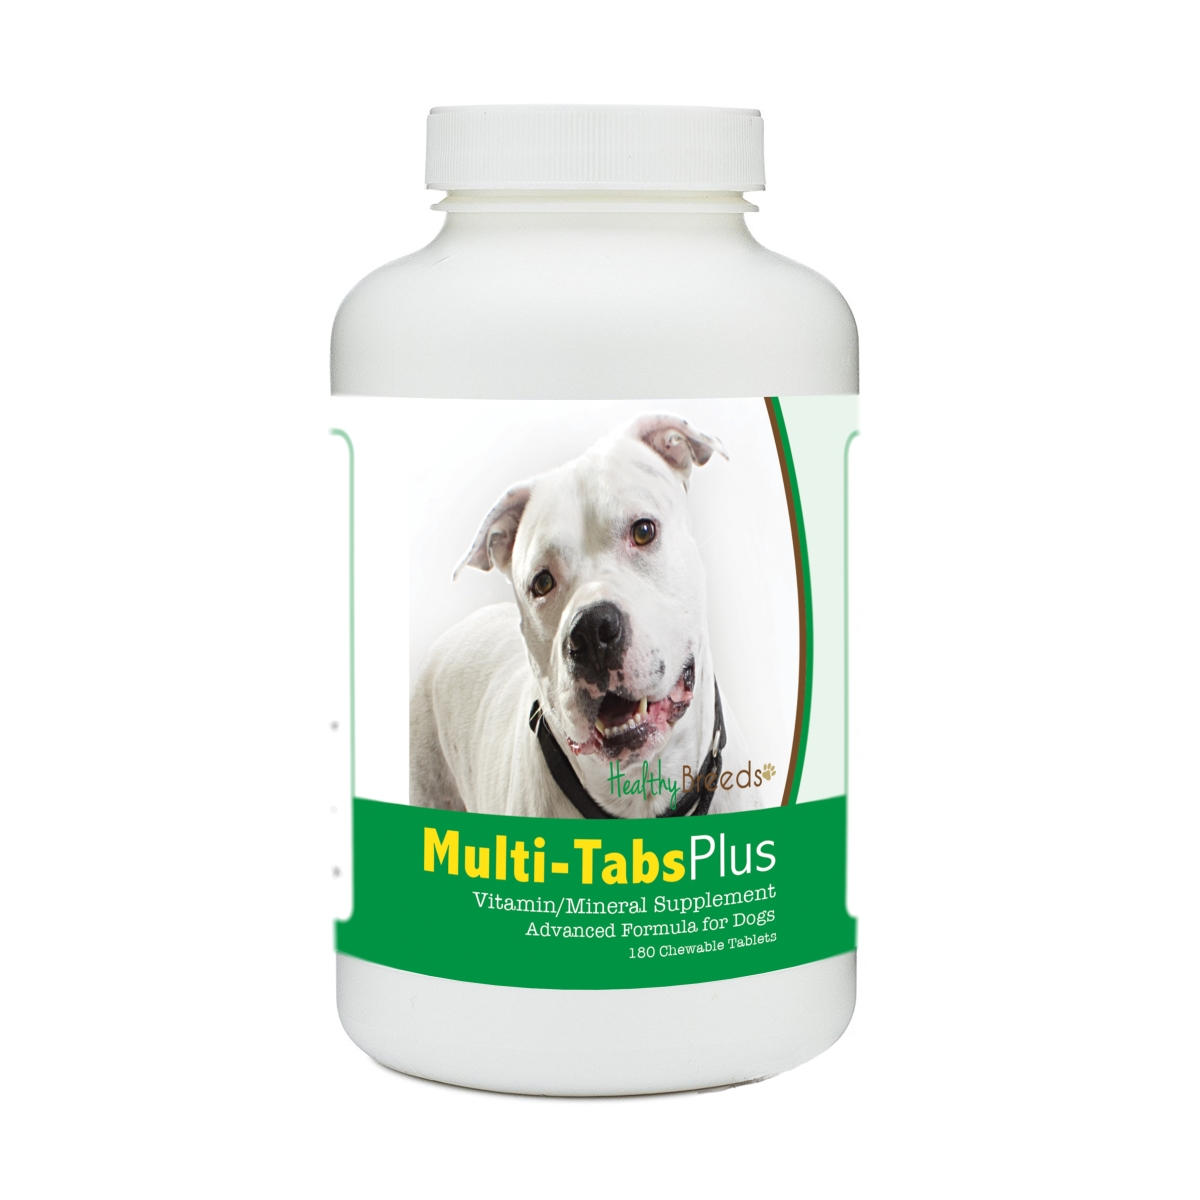 Healthy Breeds 840235180524 Pit Bull Multi-Tabs Plus Chewable Tablets - 180 Count